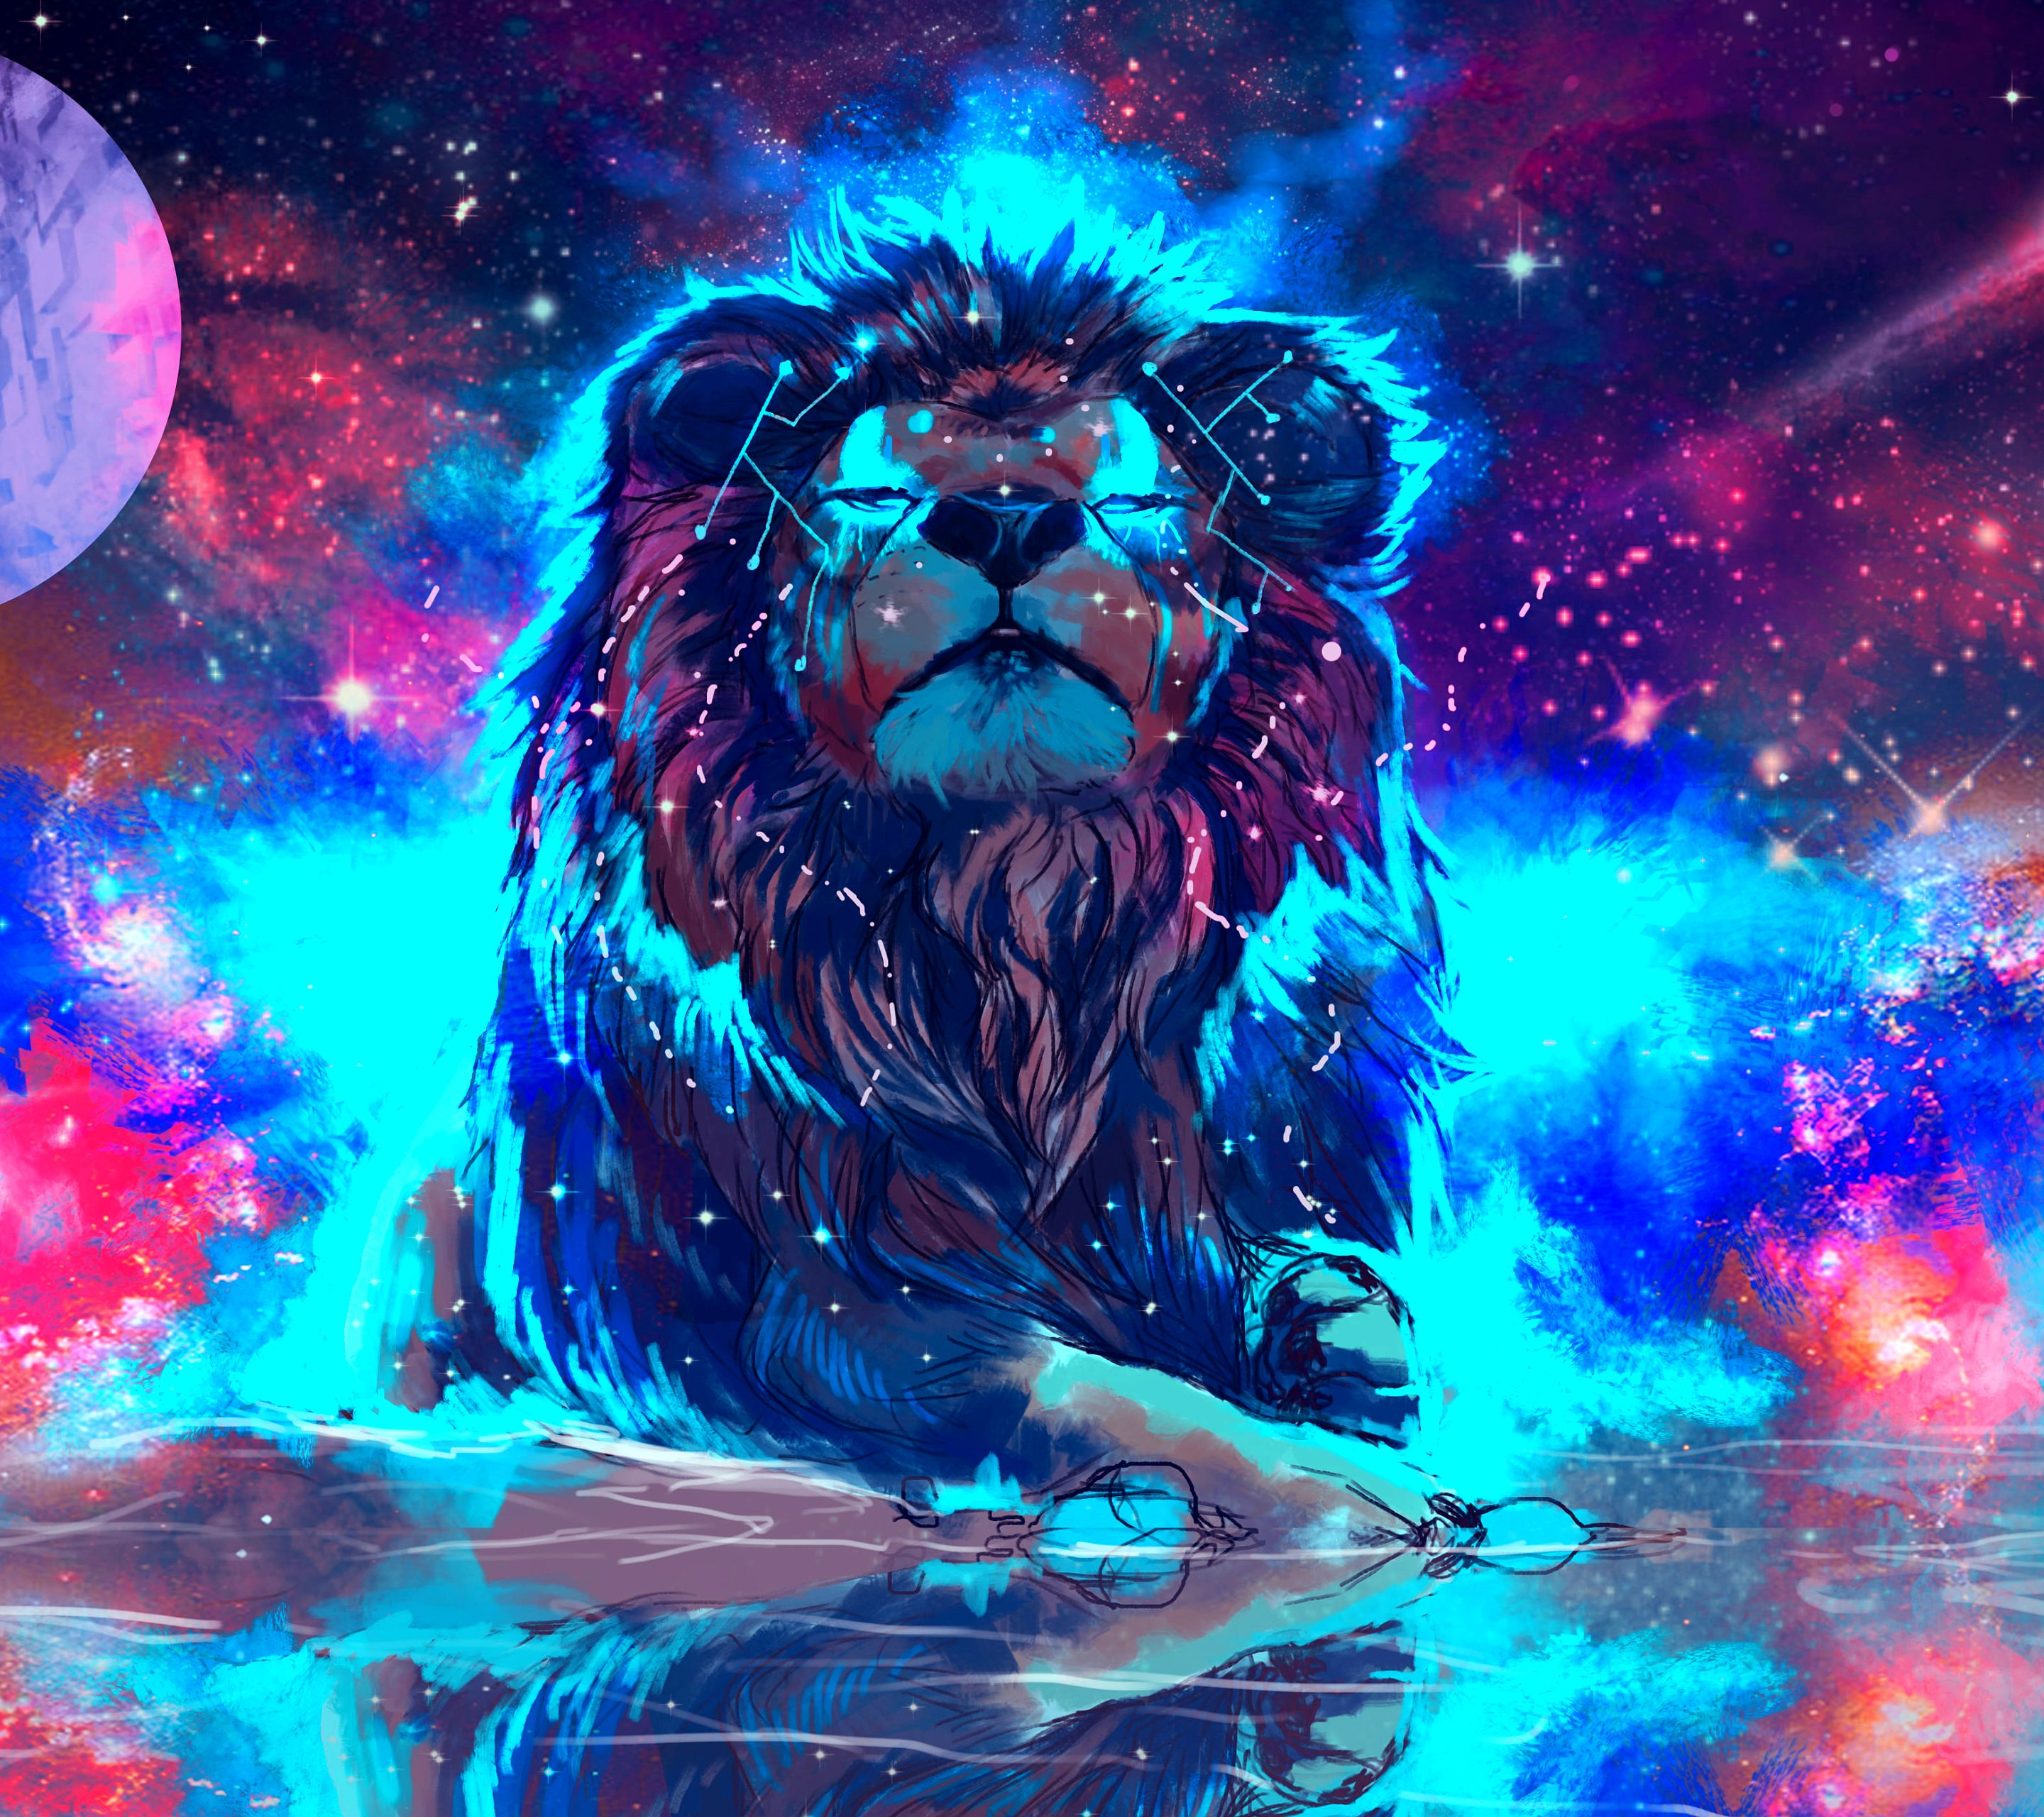 2880x2560 Animal/Lion (2880x2560) Wallpaper ID: 689482 - Mobile Abyss